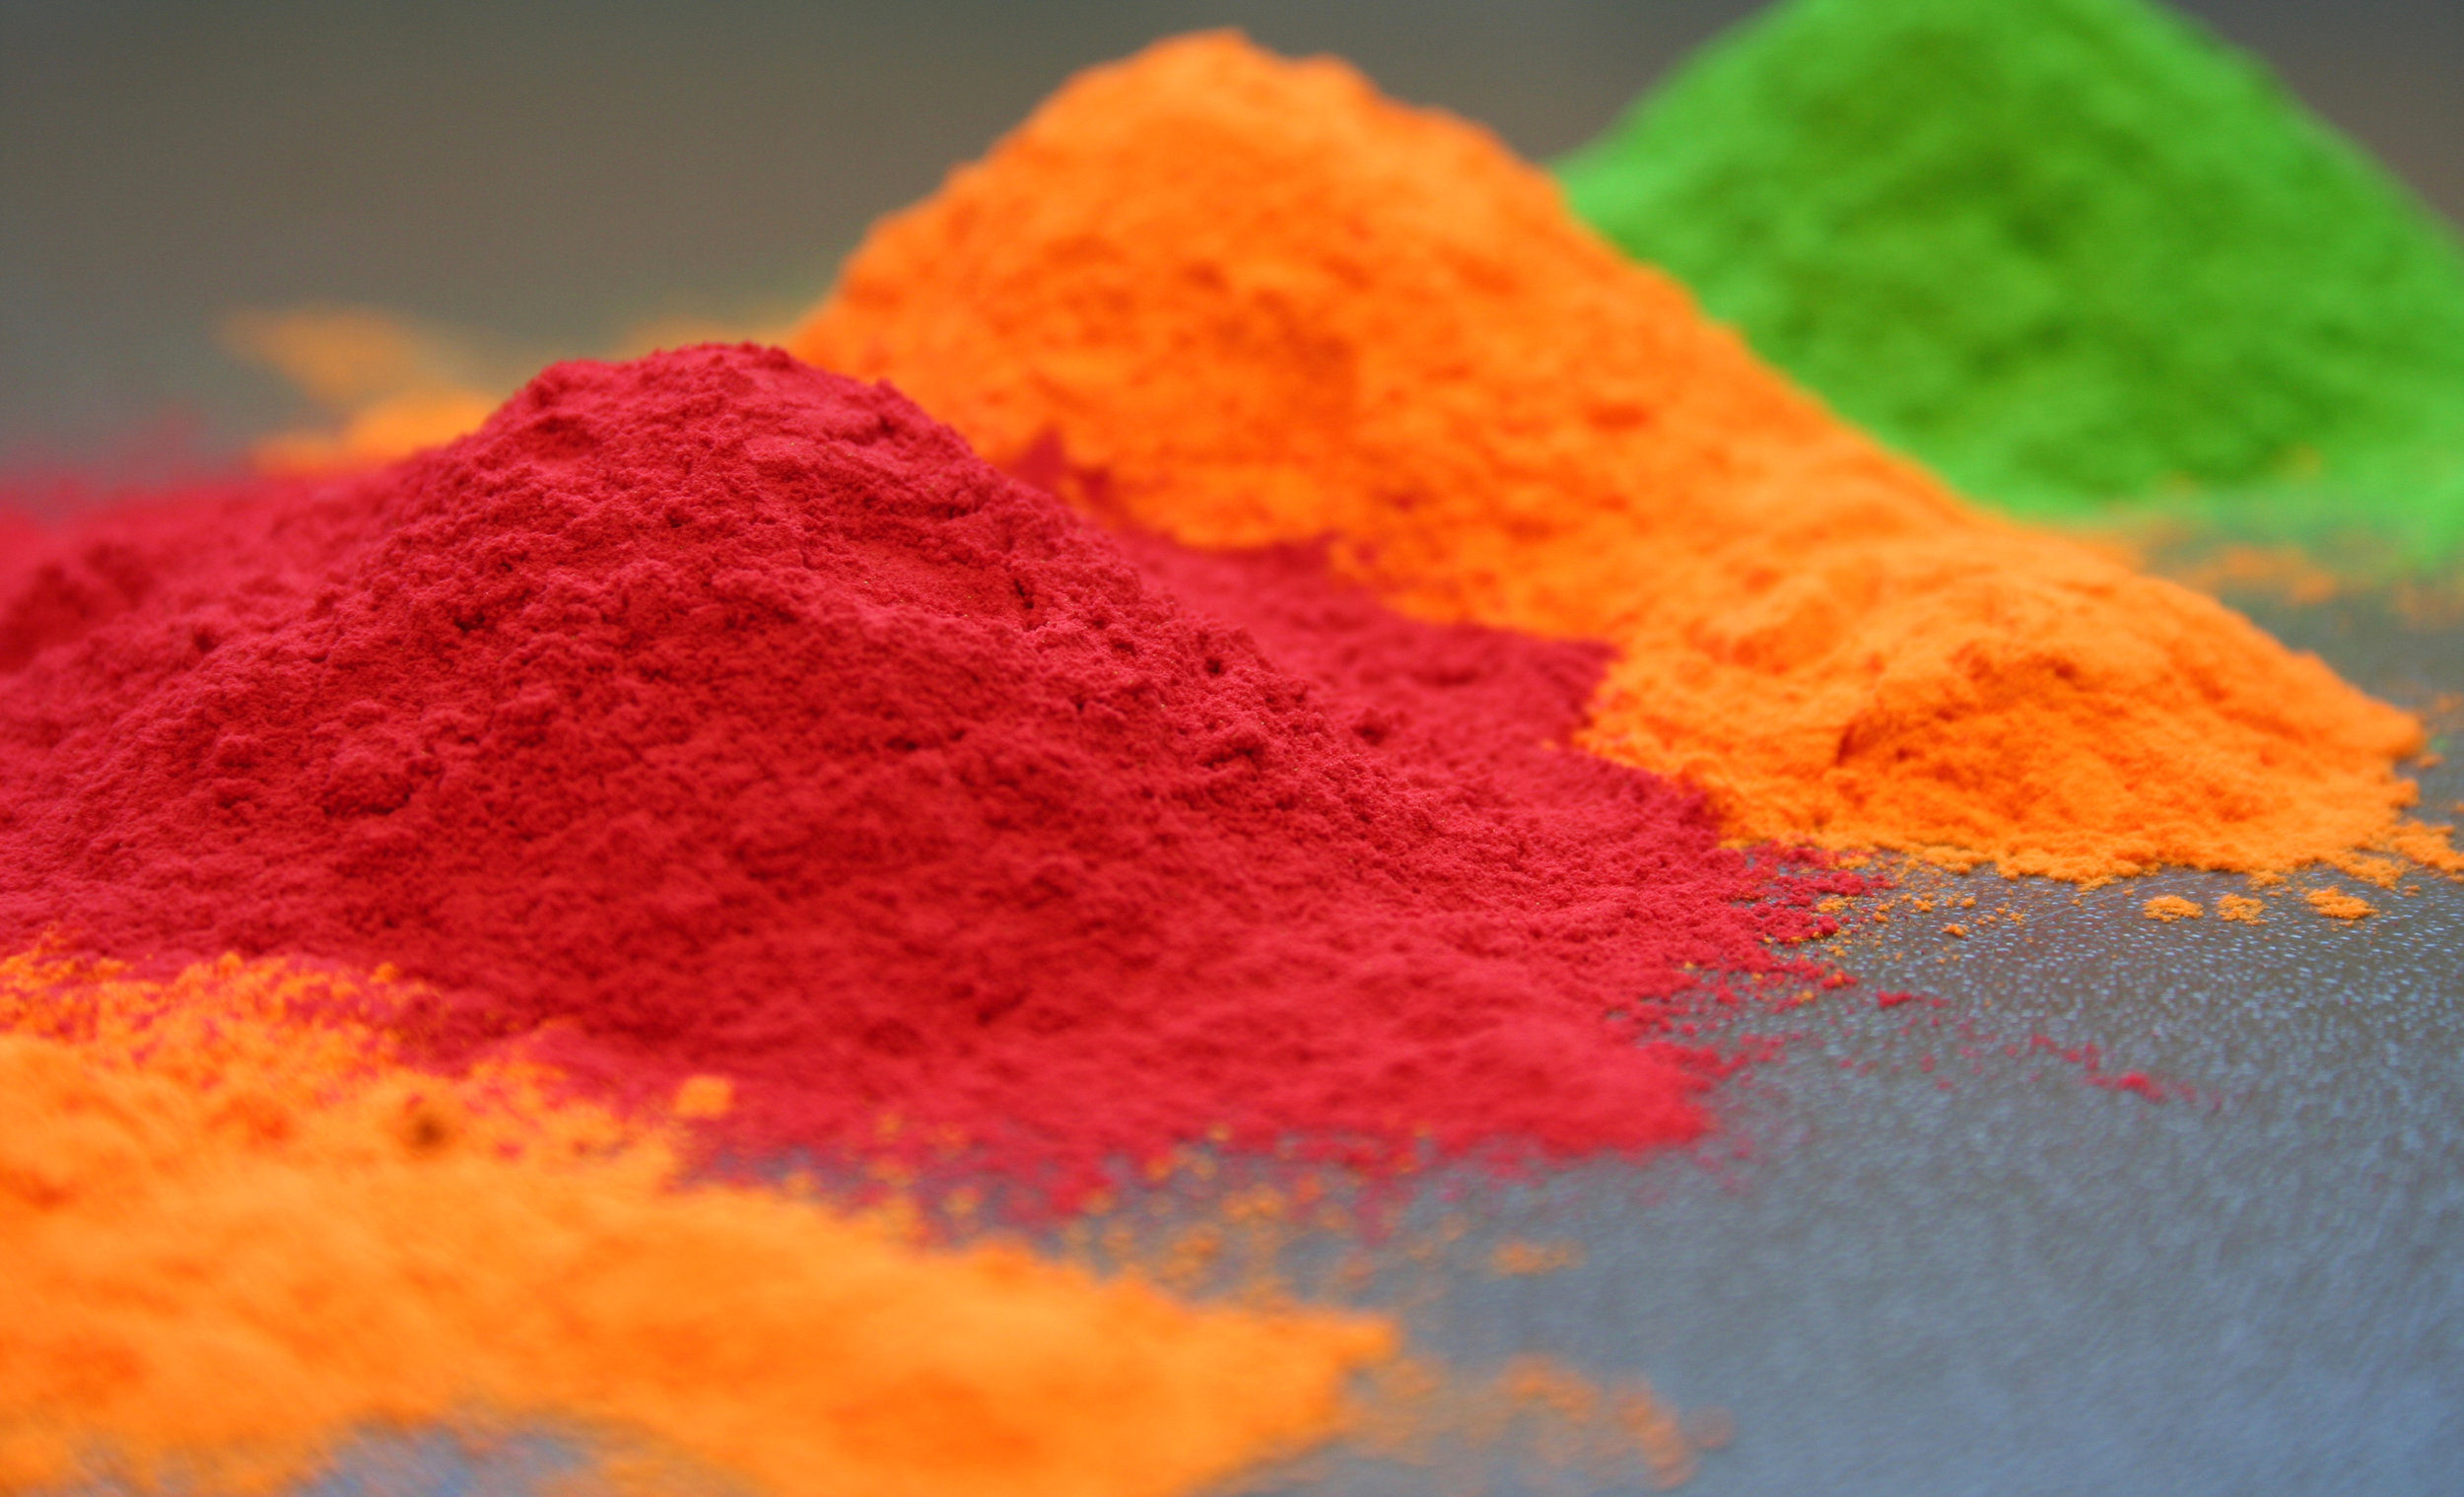 Powder for powder coating metal parts in red, orange & green.